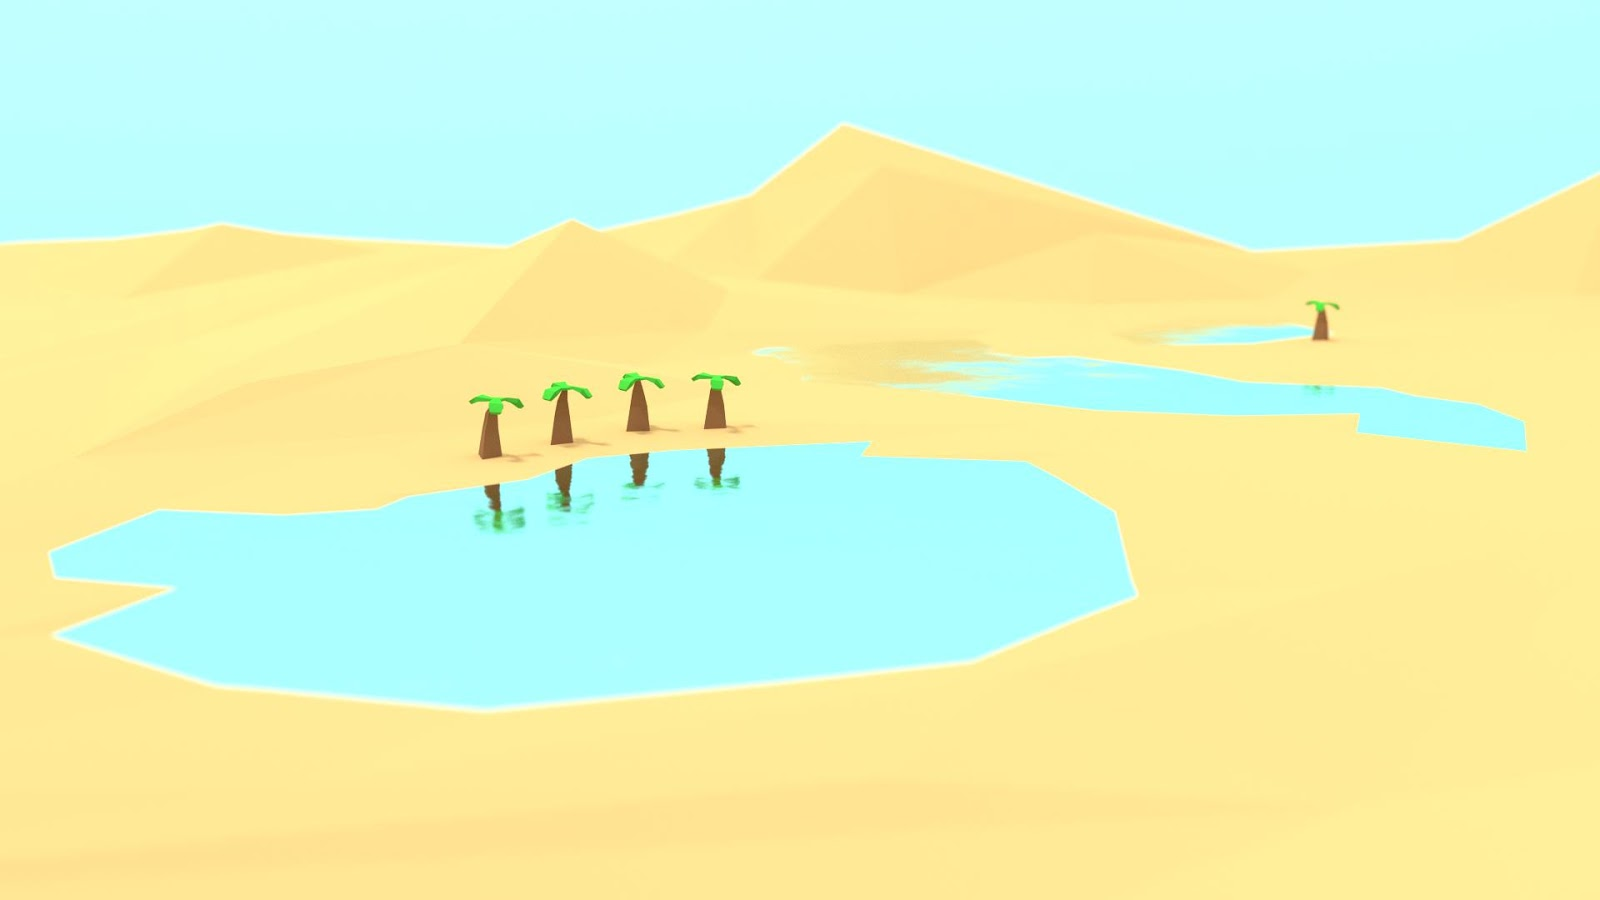 Desert Oasis in a LowPoly Style, with sand, mountains and a water oasis